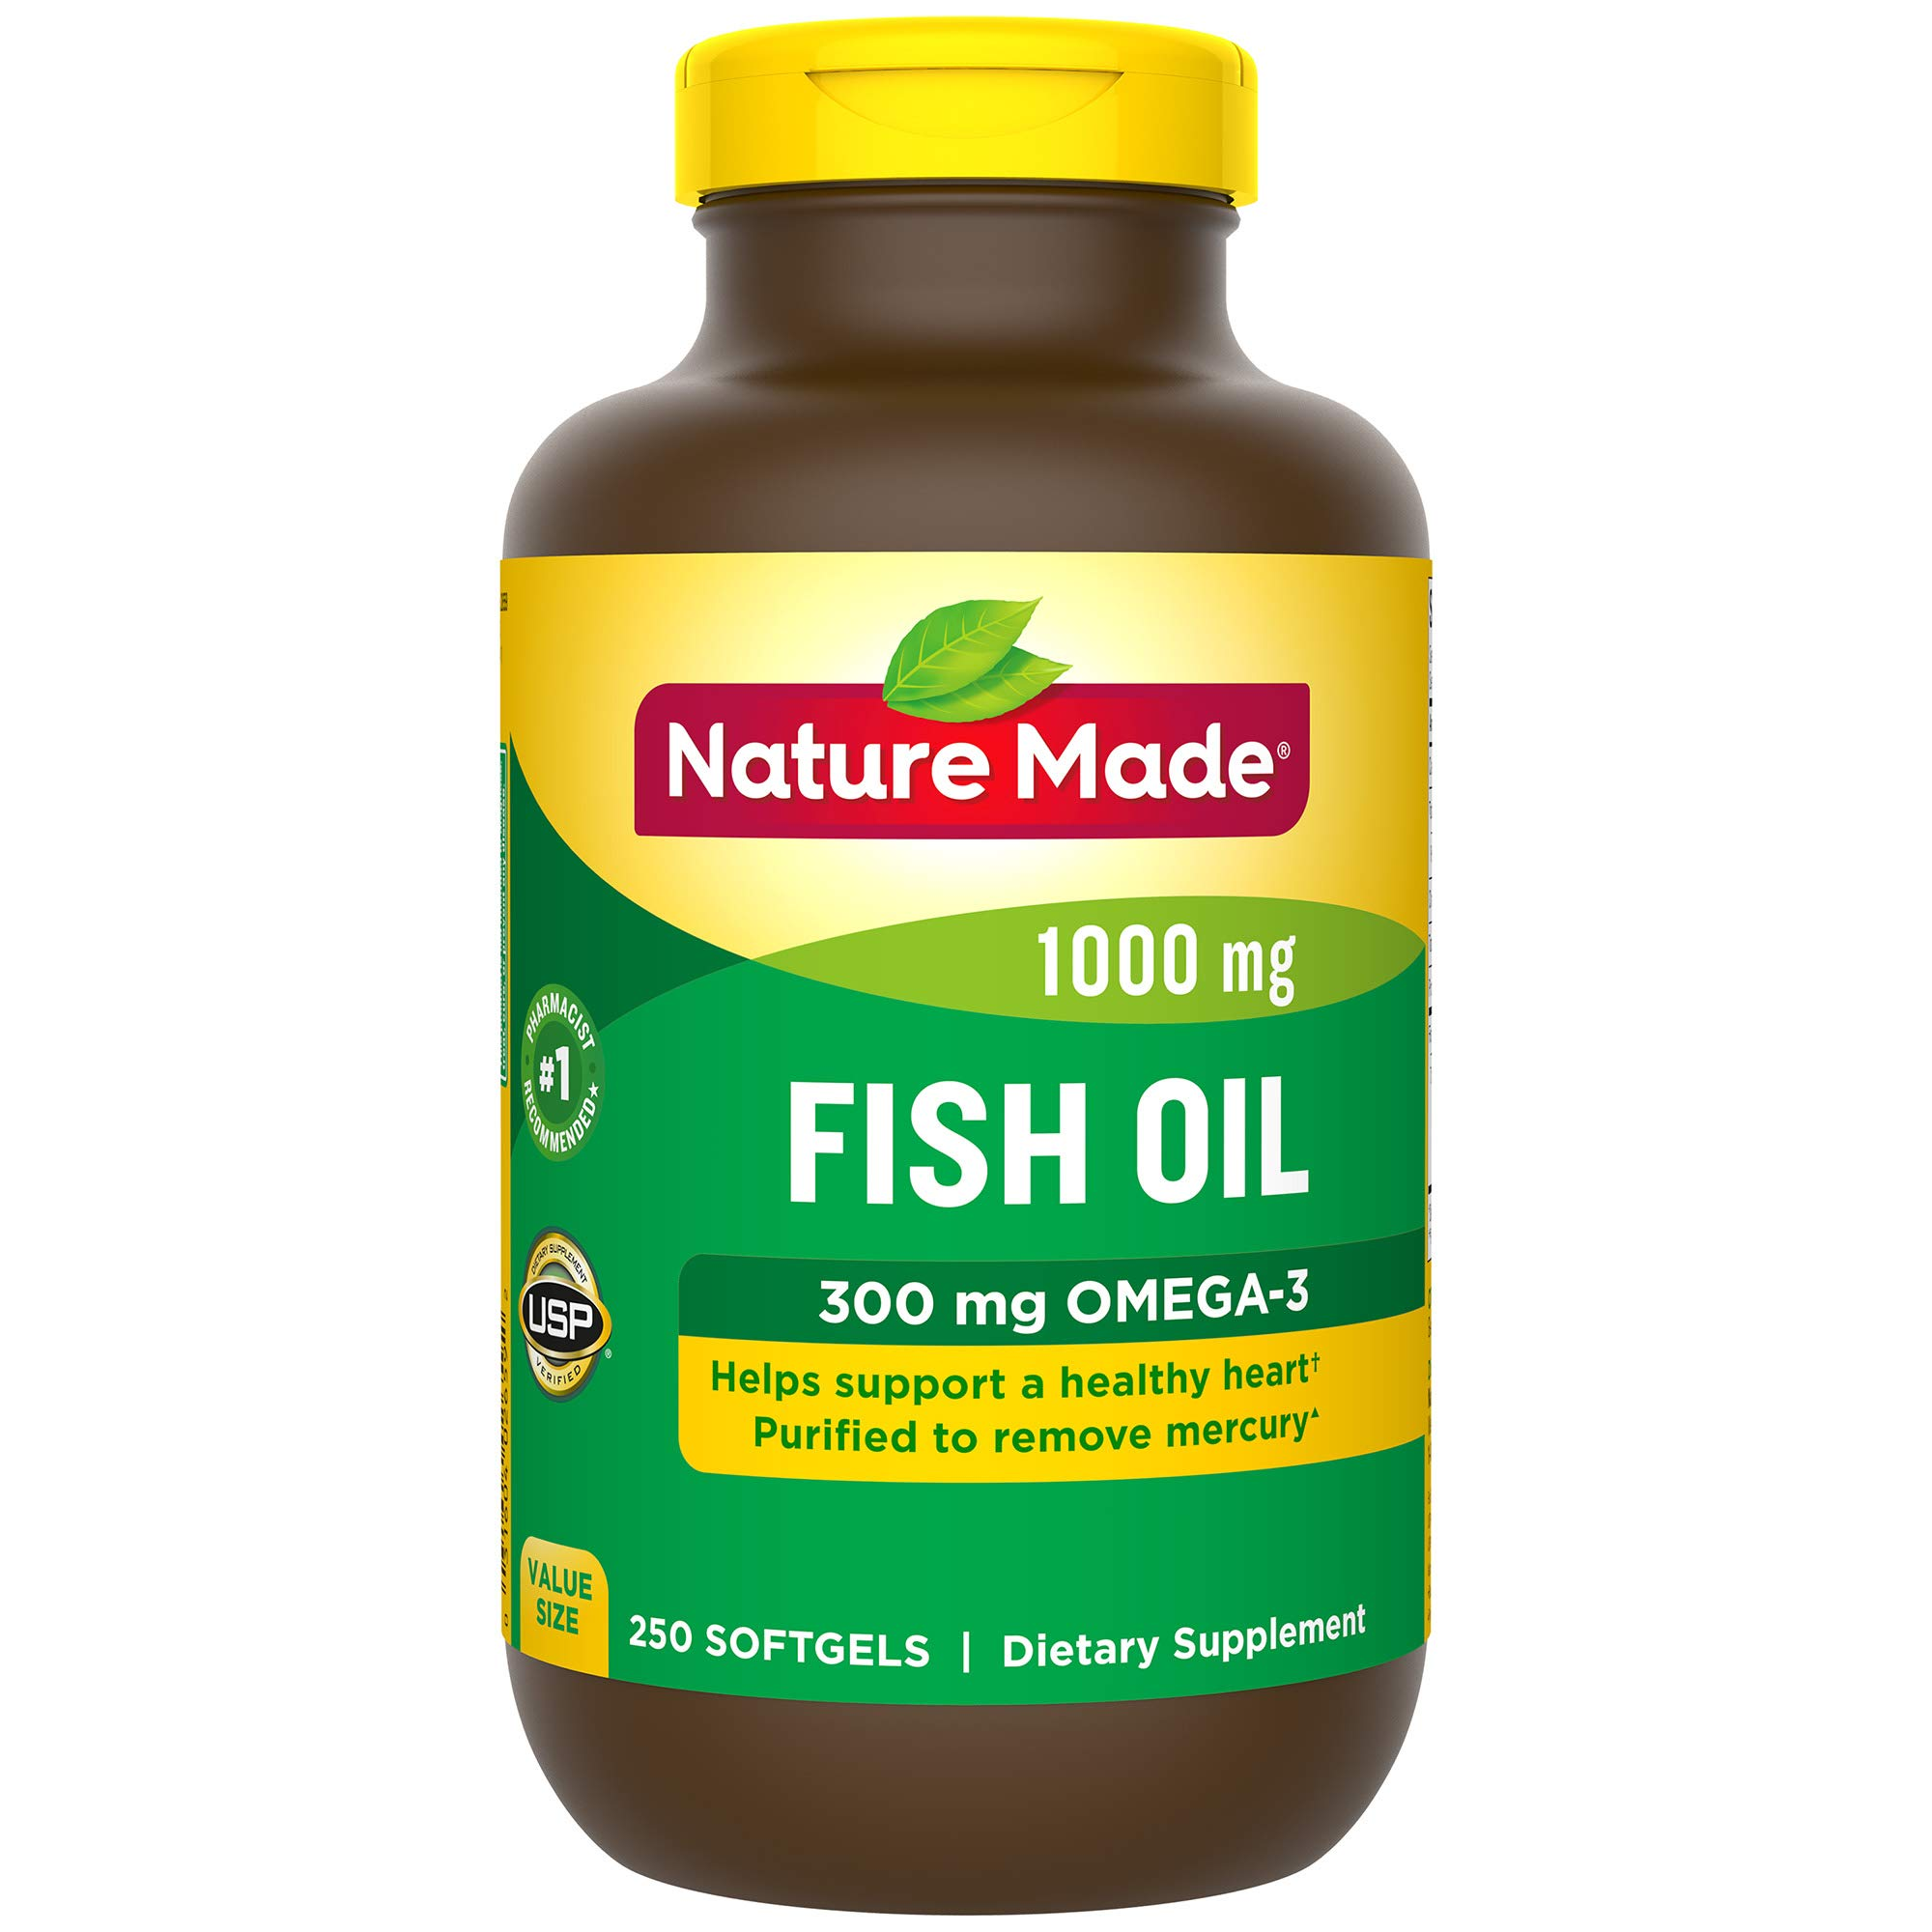 Nature Made Fish Oil 1000 mg Softgels, 250 Count Value Size for Heart Health† (Packaging May Vary) by Nature Made